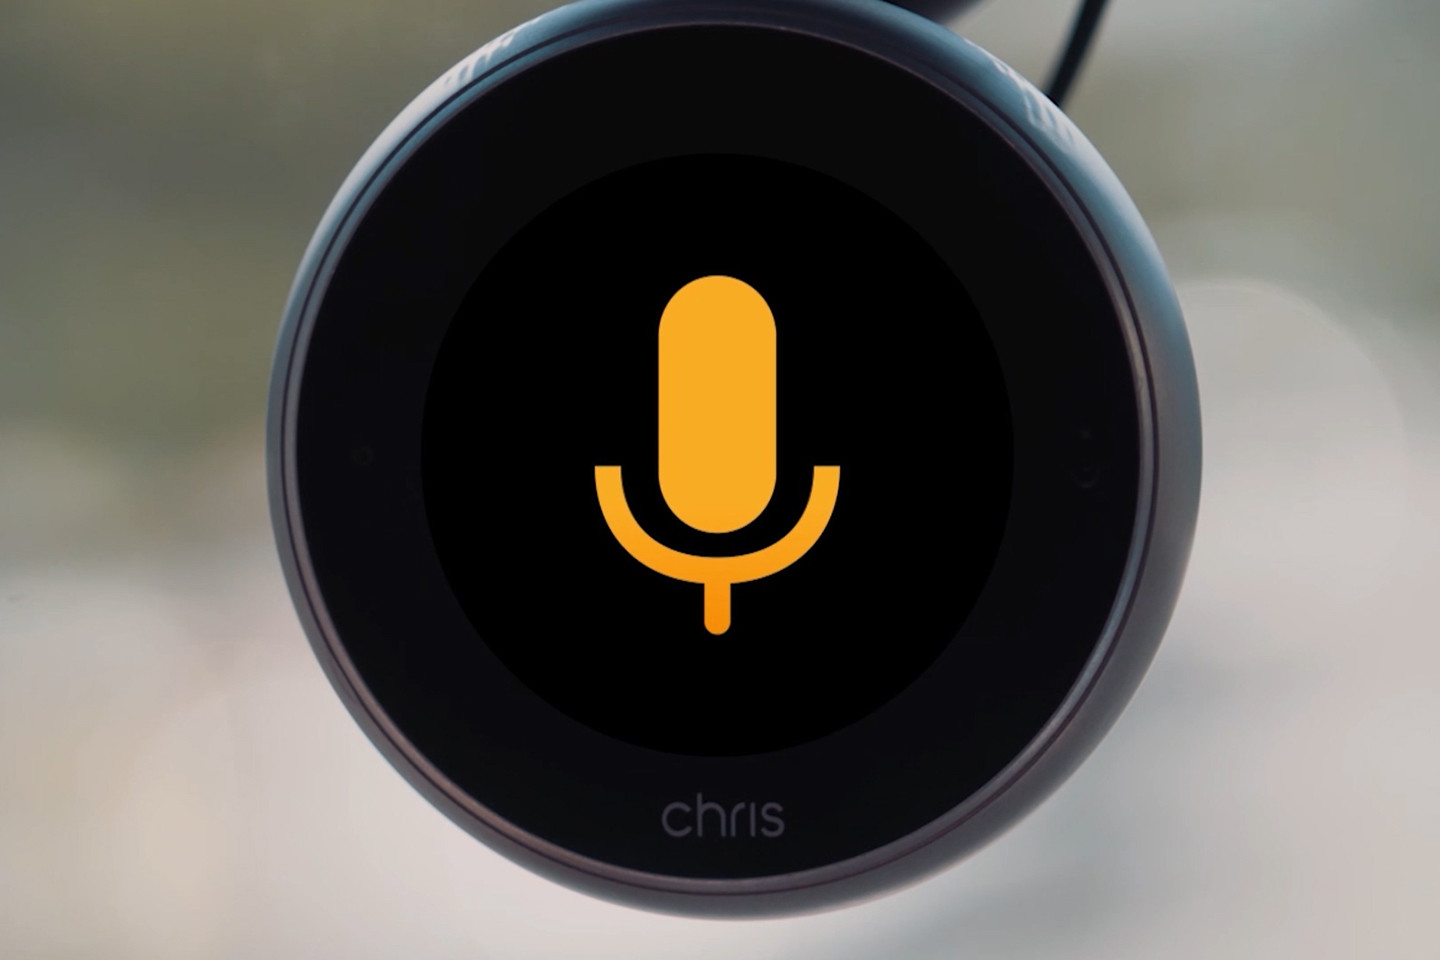 Chris: Your digital co-driver